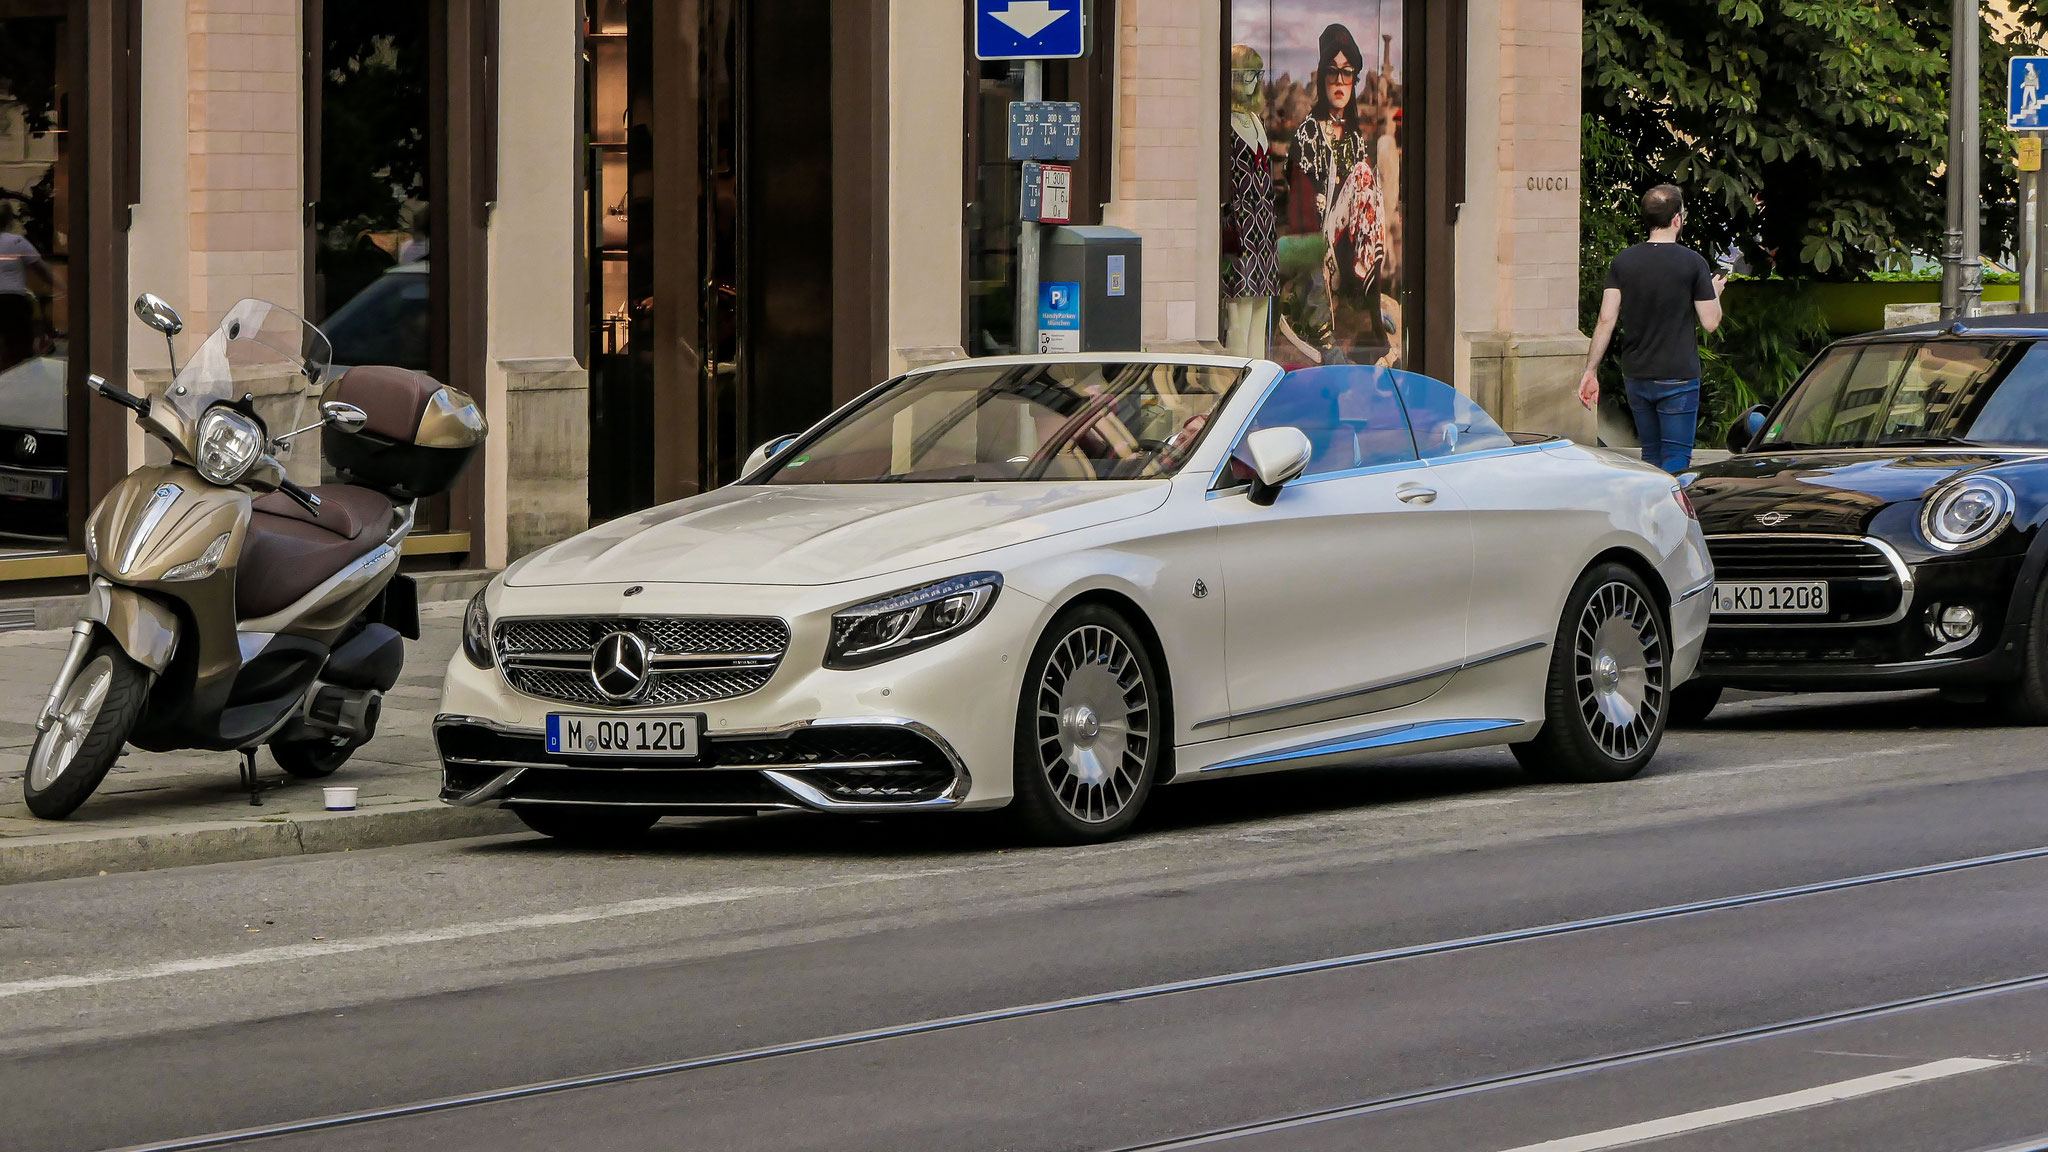 Mercedes-Maybach S 650 Cabrio (1of300) - M-QQ-120